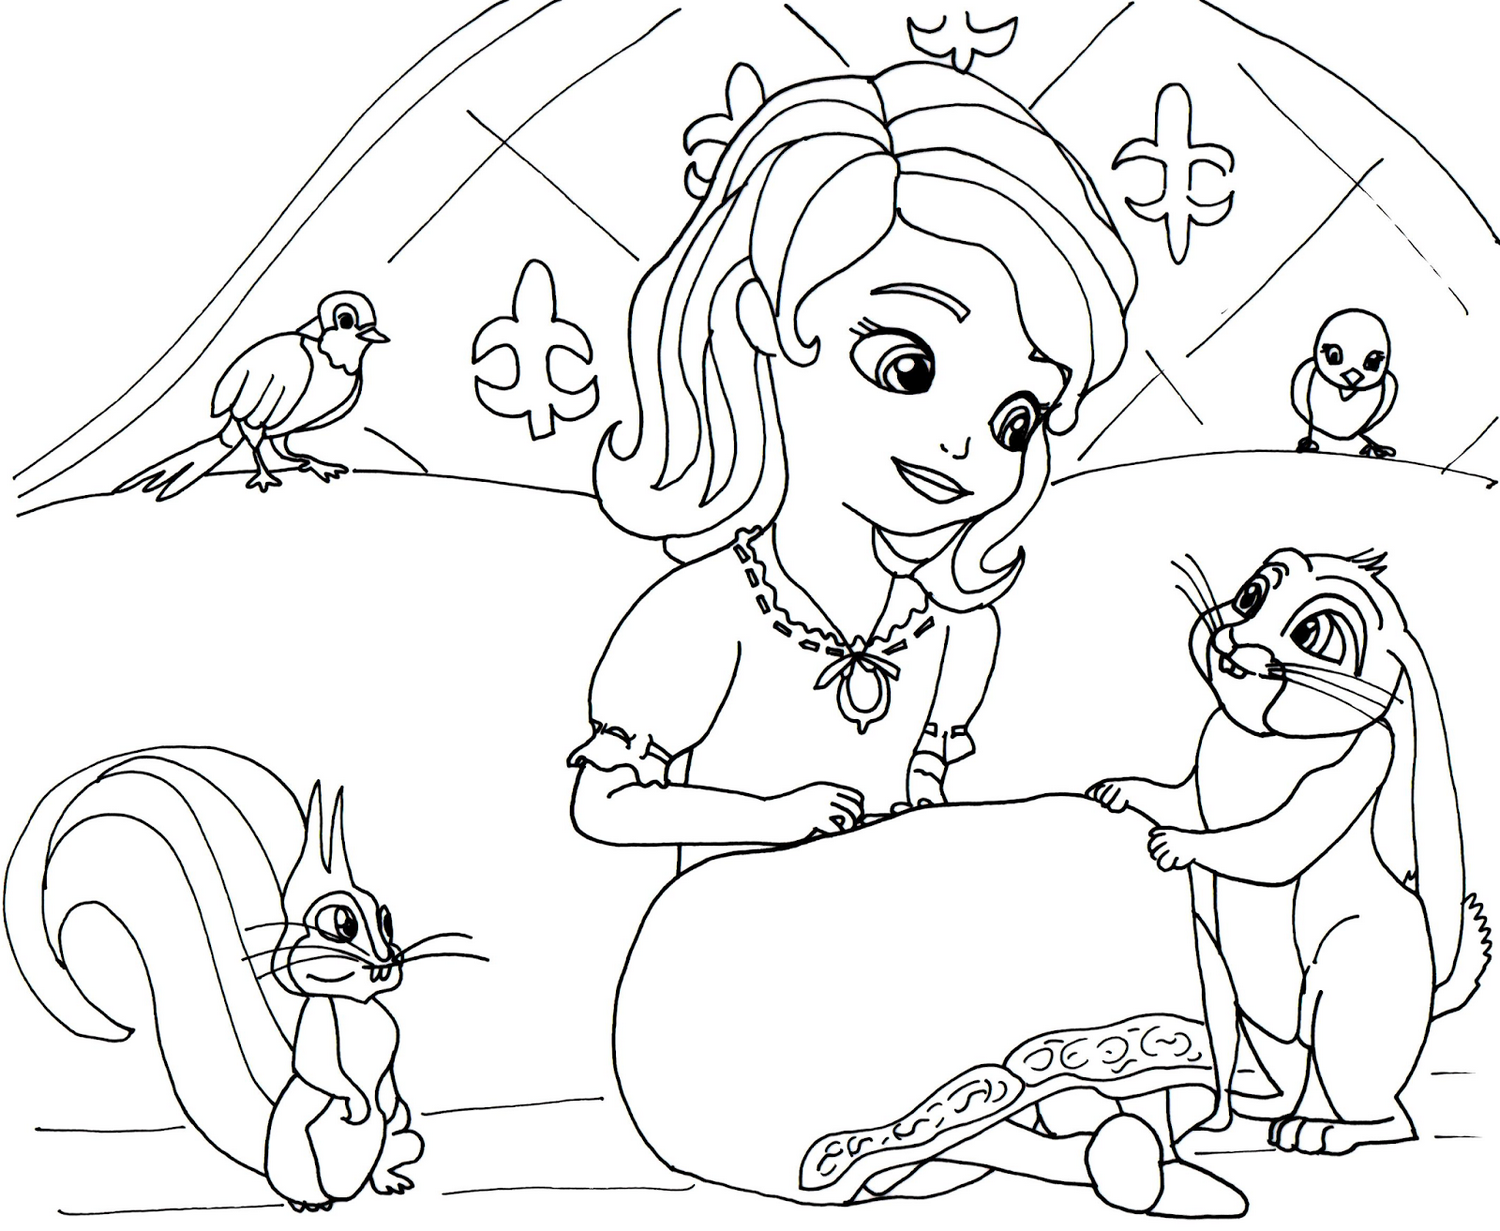 princess_sofia_colouring_books